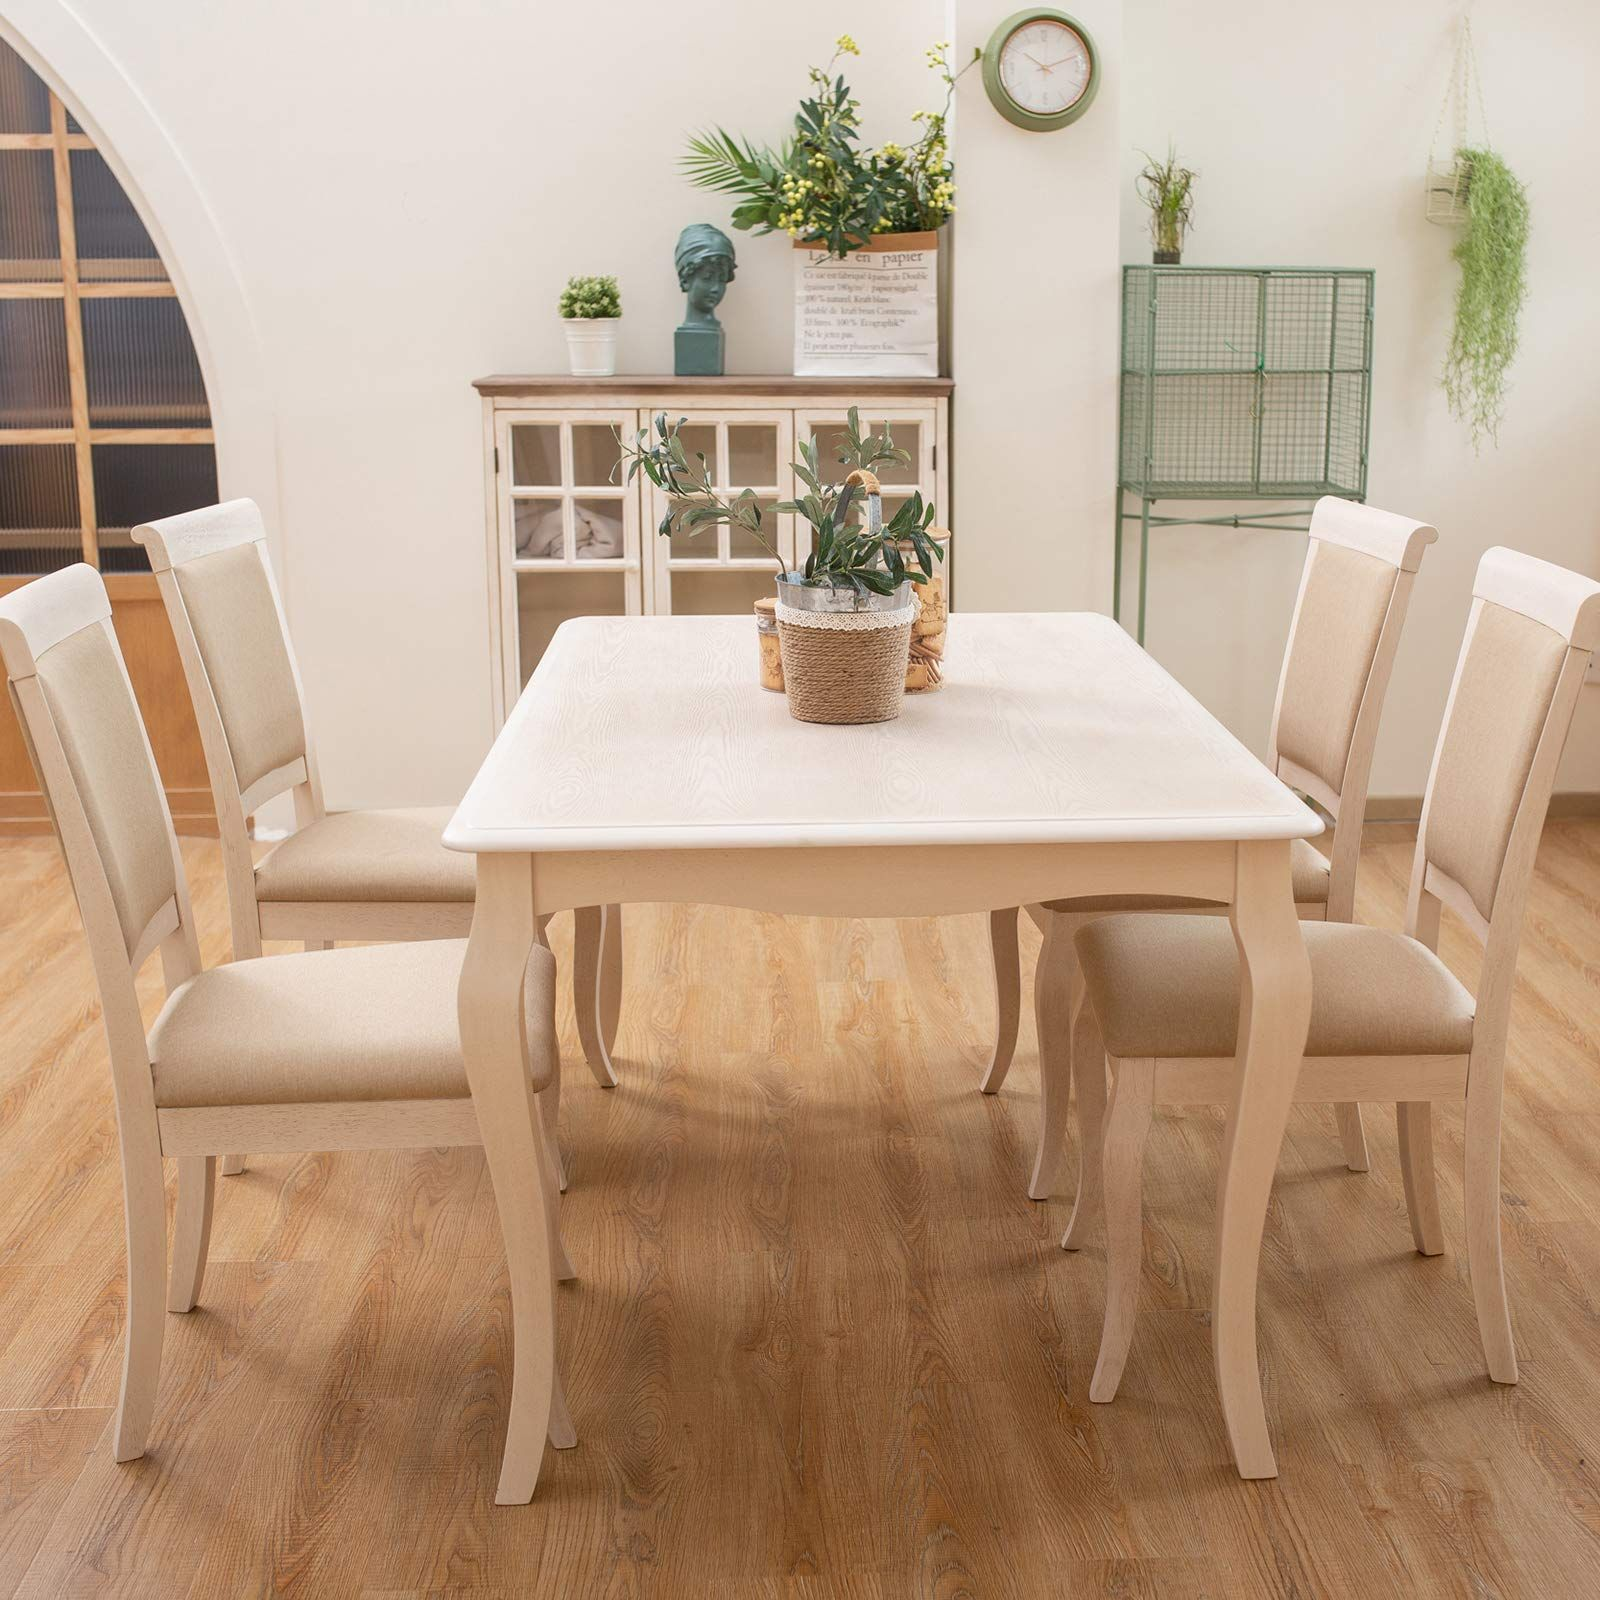 Furgle Dining Set Rectangular Rubber Wood Kitchen Table With 4 Chairs Back And Seat With Microfi Modern Furniture Sets Modern Kitchen Room Kitchen Table Wood